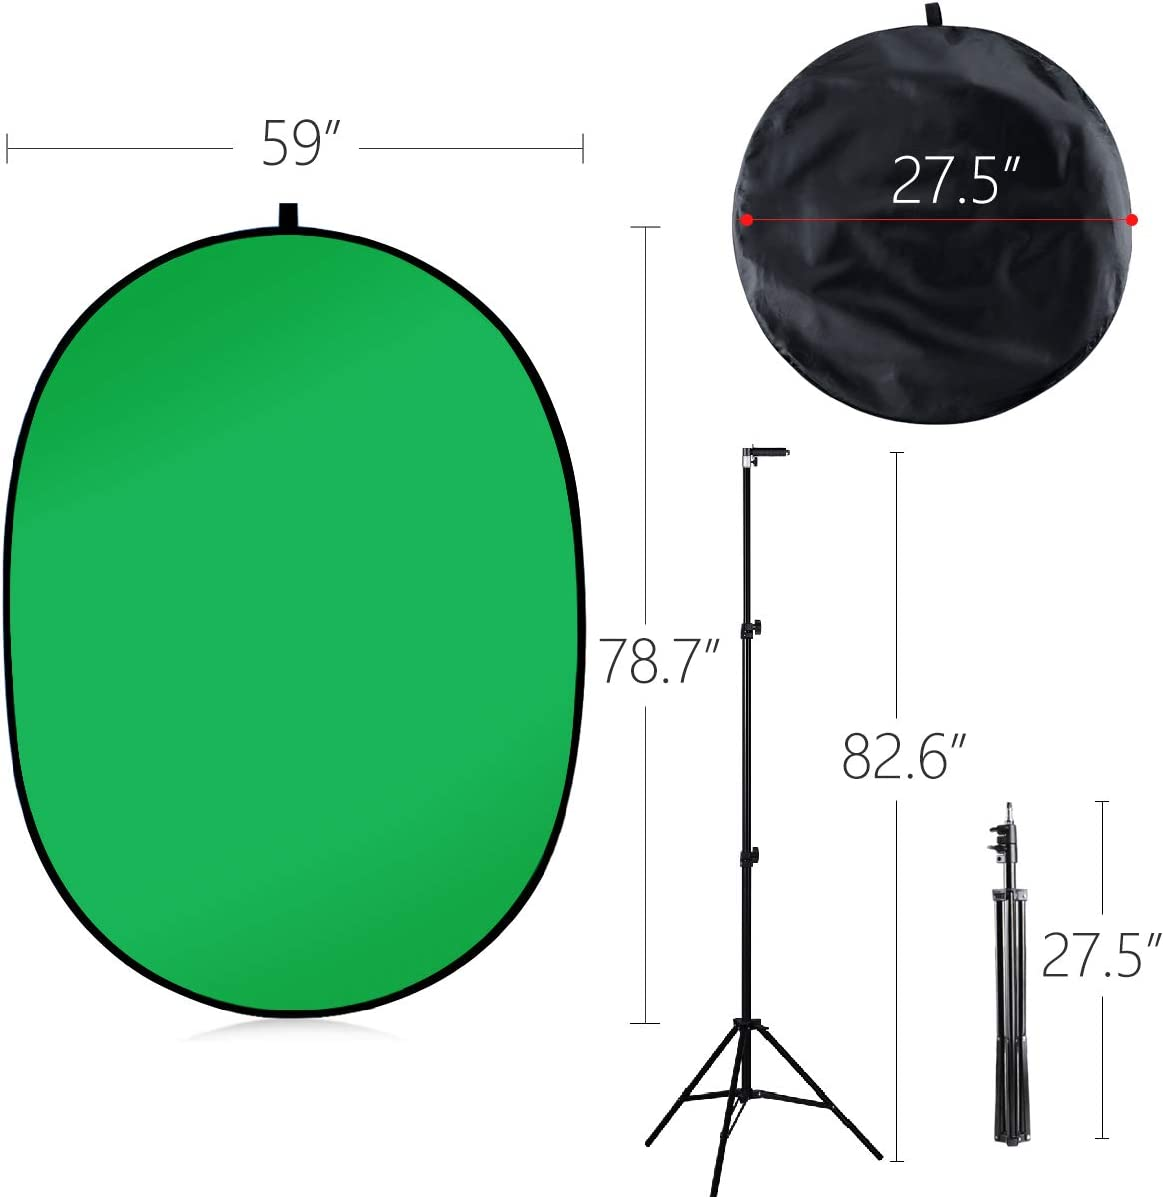 5X7Portable Green Screen Backdrop with Stand Blue and Green 2-in-1 Collapsible Green Screen Kit